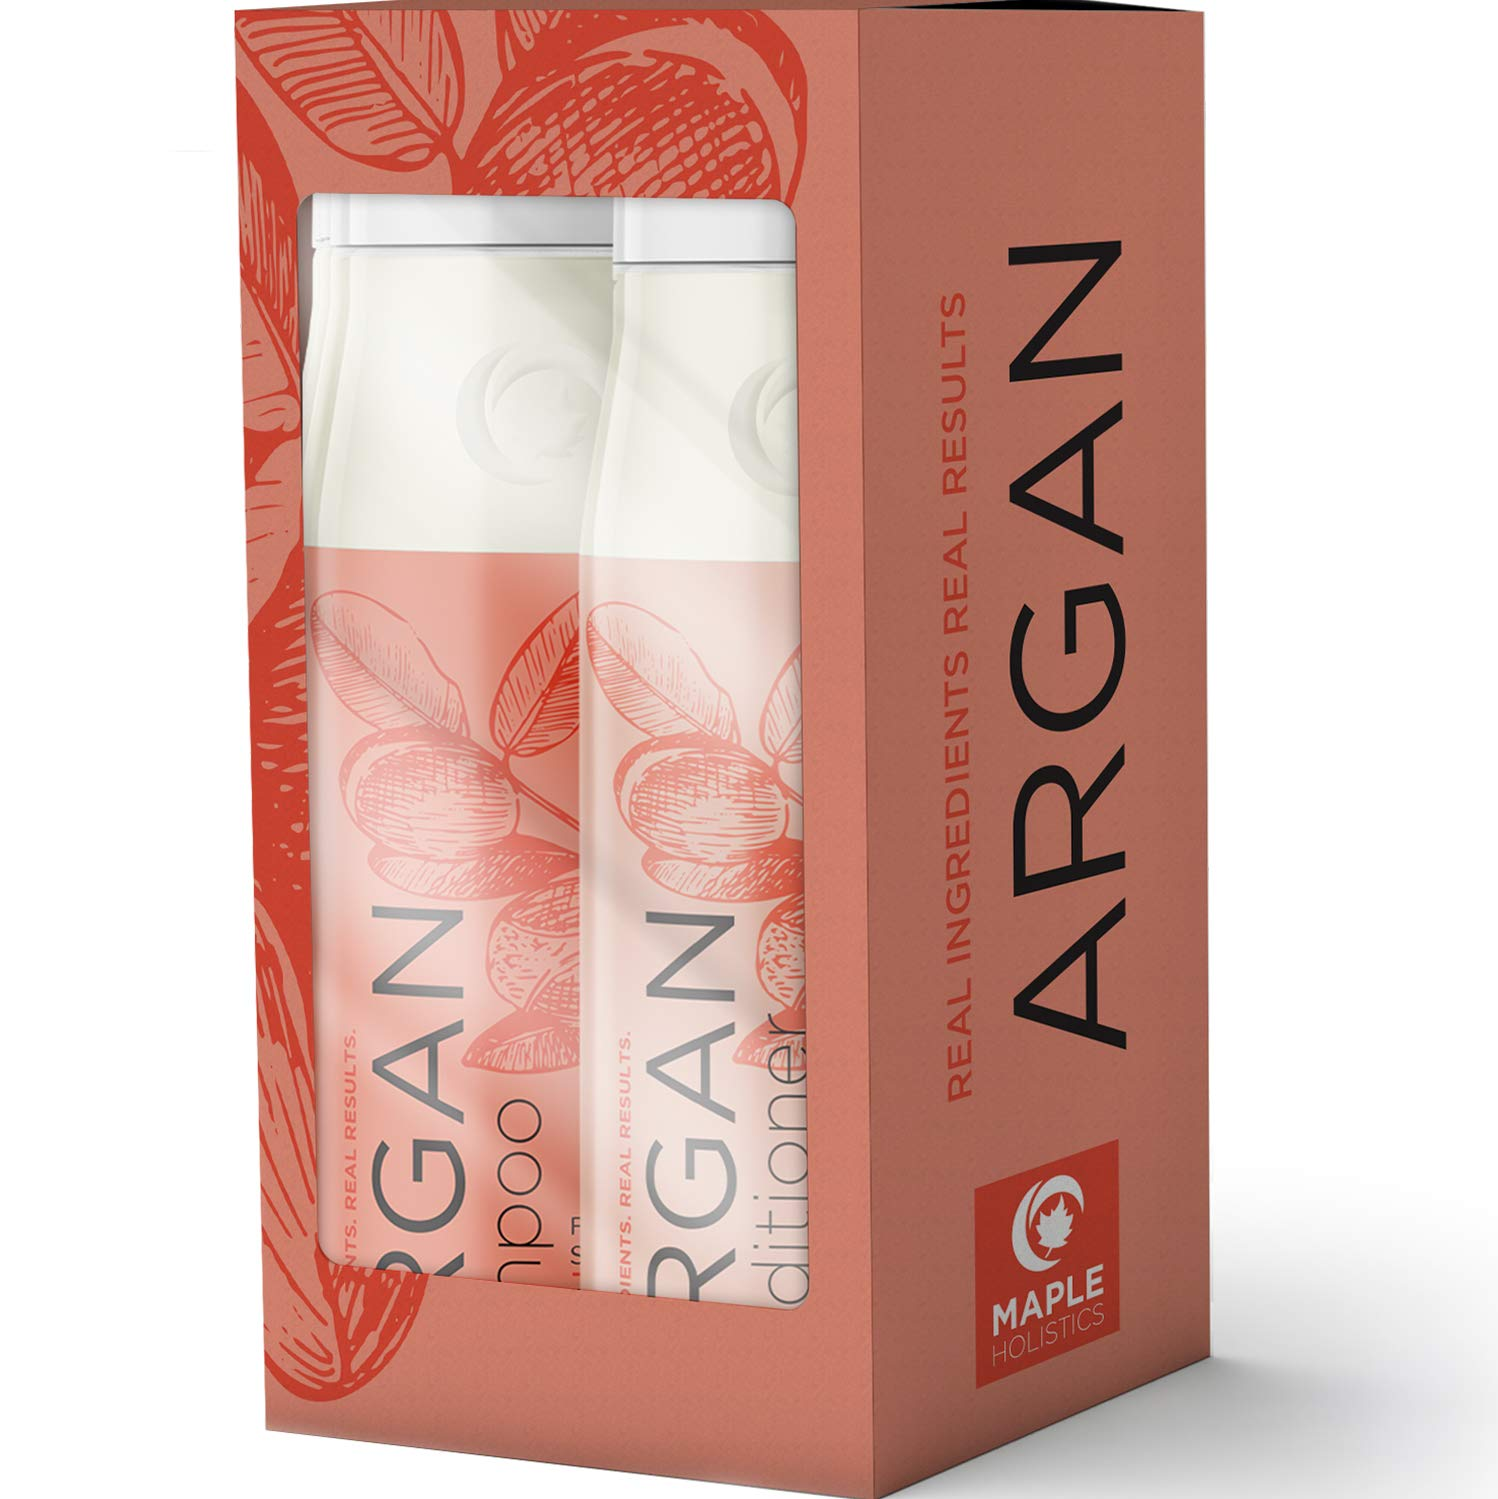 Argan Oil Shampoo And Conditioner Gift Set For Dry Damaged Hair - Natural Hair Care For Healthy Hair Growth And Silky Smooth Hair - With Hibiscus Avocado Peach Kernel Almond And Jojoba Oil - USA Made